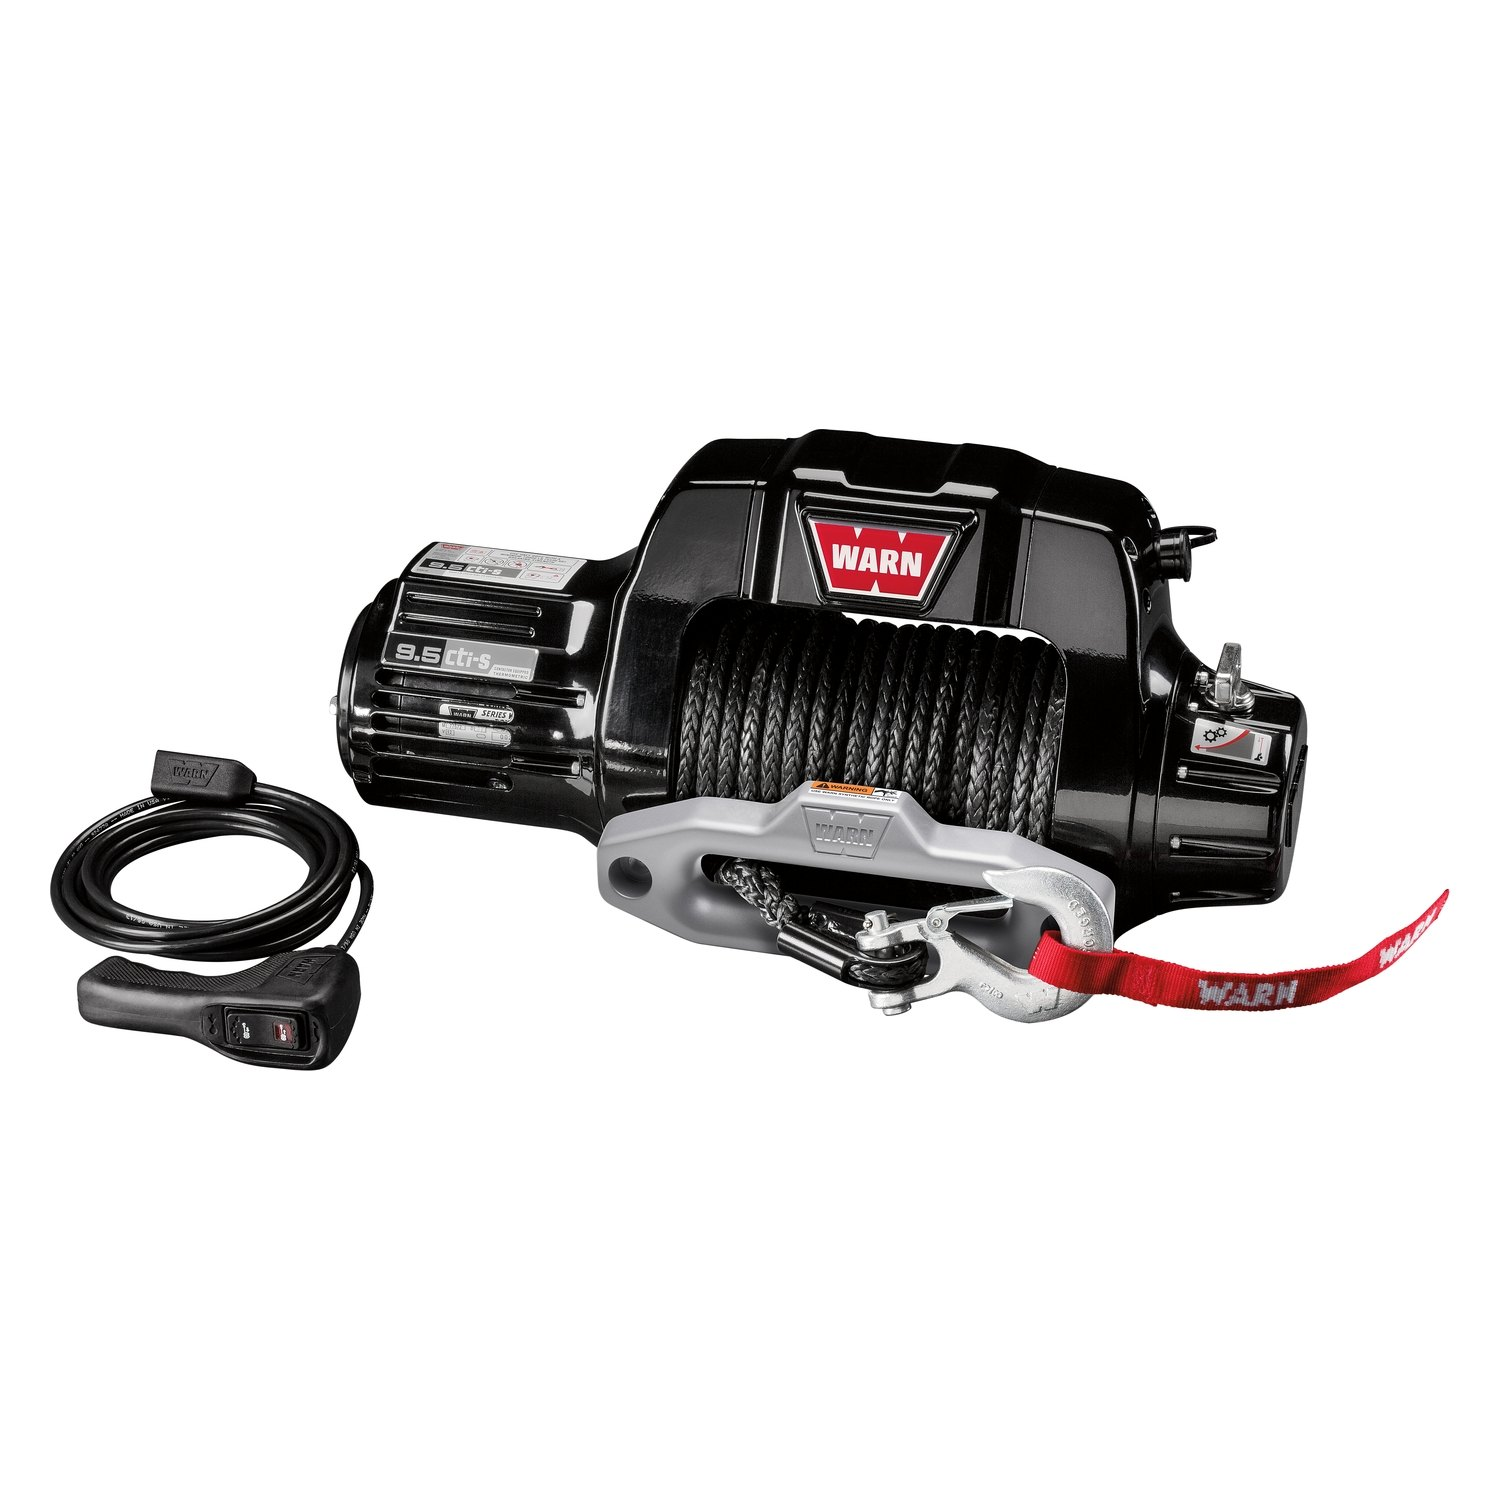 Warn 9500 Lbs 95cti Series Self Recovery Electric Winch 9 5cti Wiring Diagram With Wire Ropewarn Synthetic Spydura